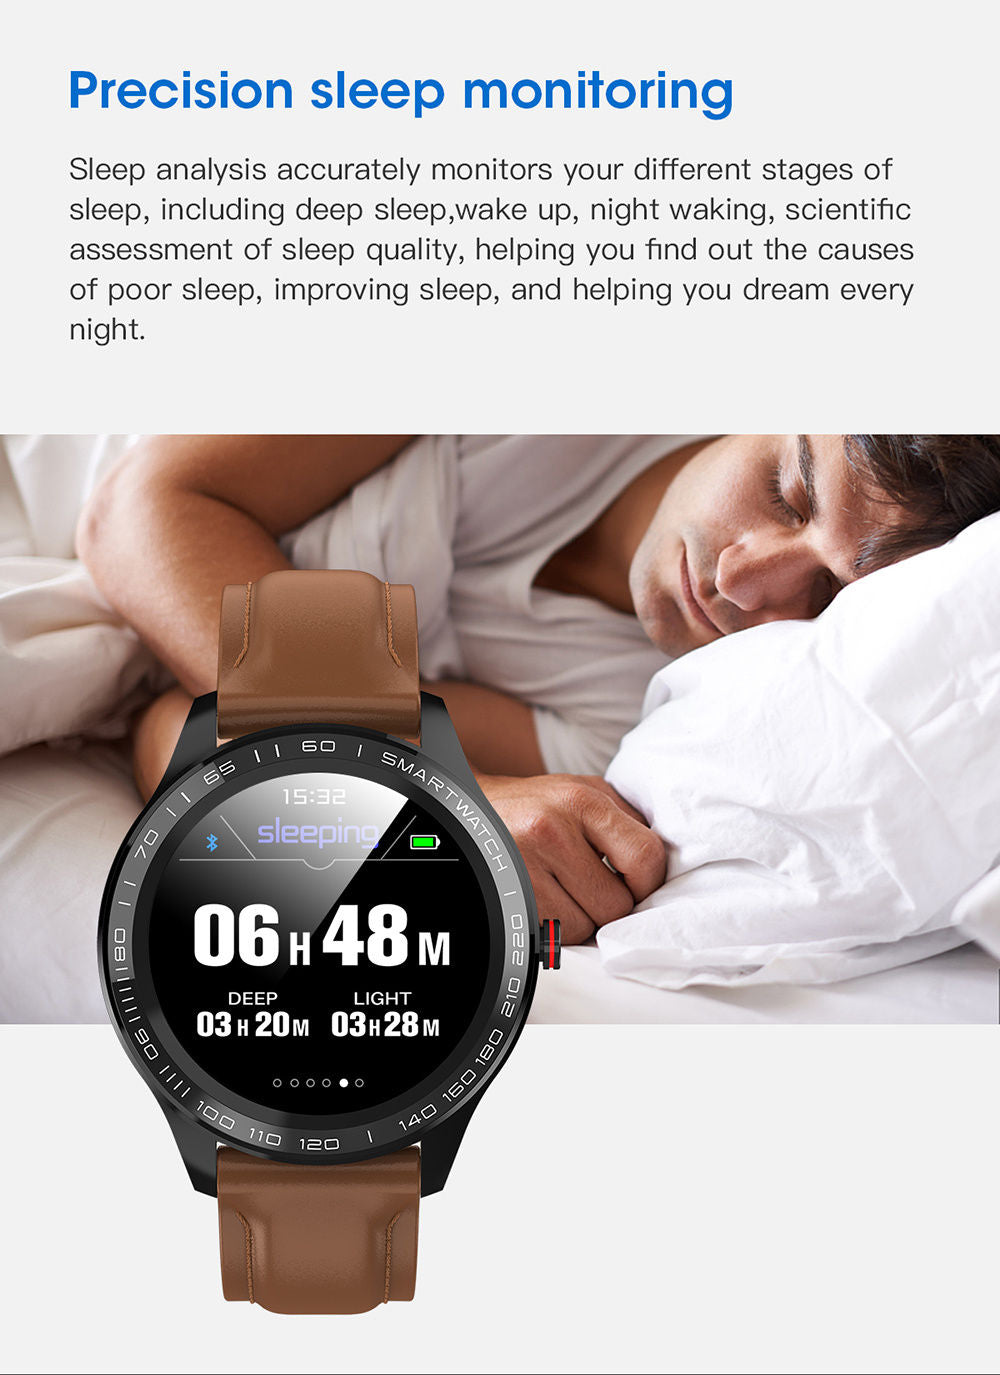 detailed description of L9 smart watch 16